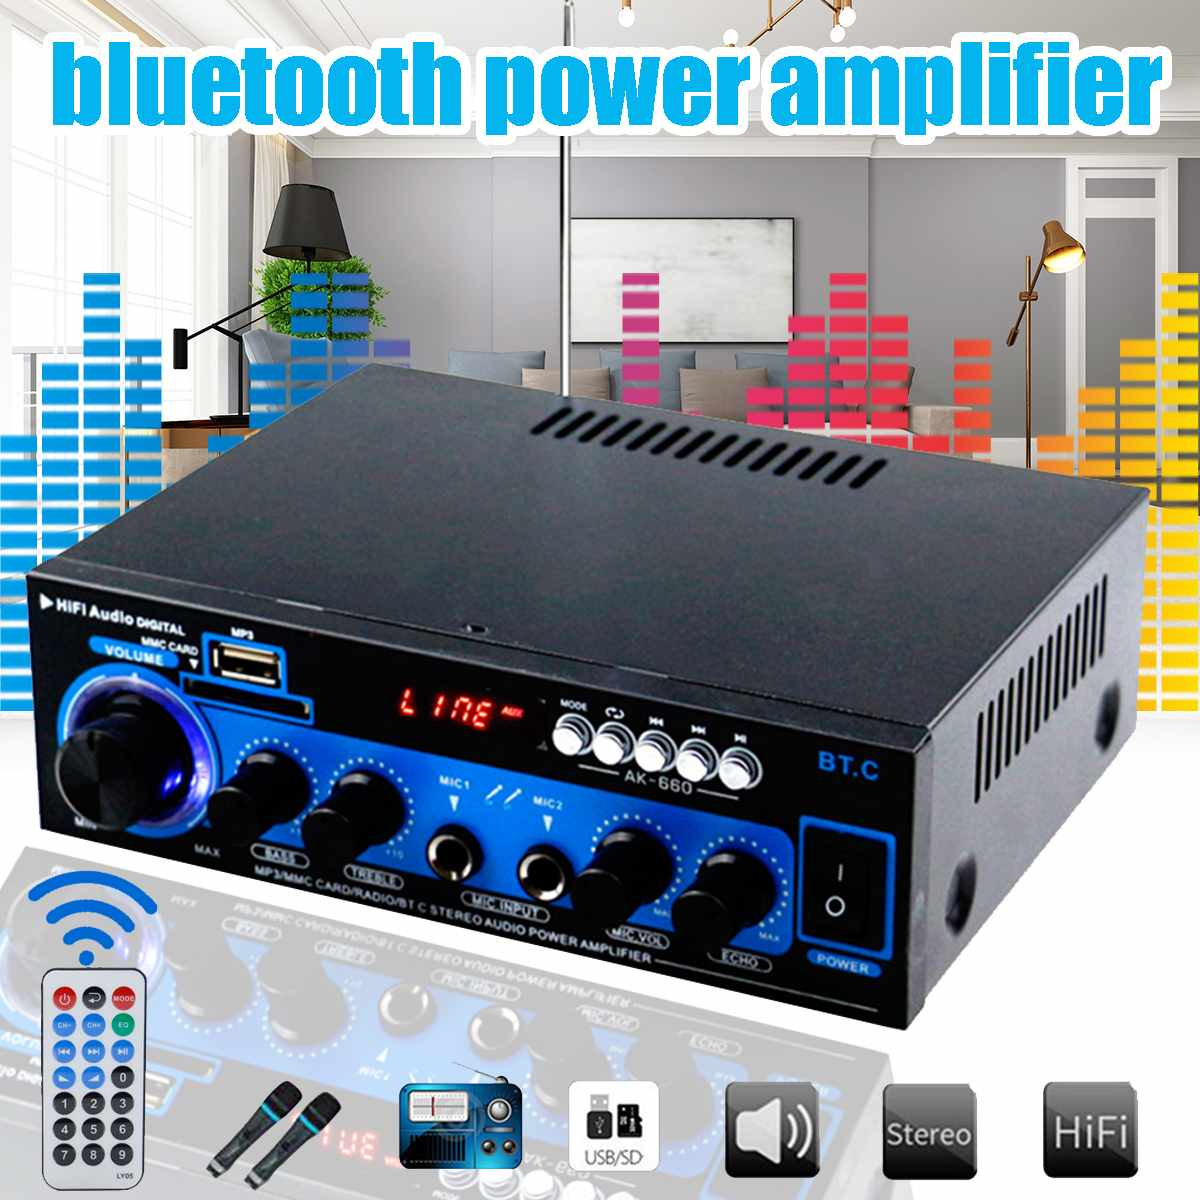 1000W Car Home Amplifiers HIFI Bass Bluetooth Audio Power Amplifier For Public Broadcasting Theater Amplifier Subwoofer Speakers